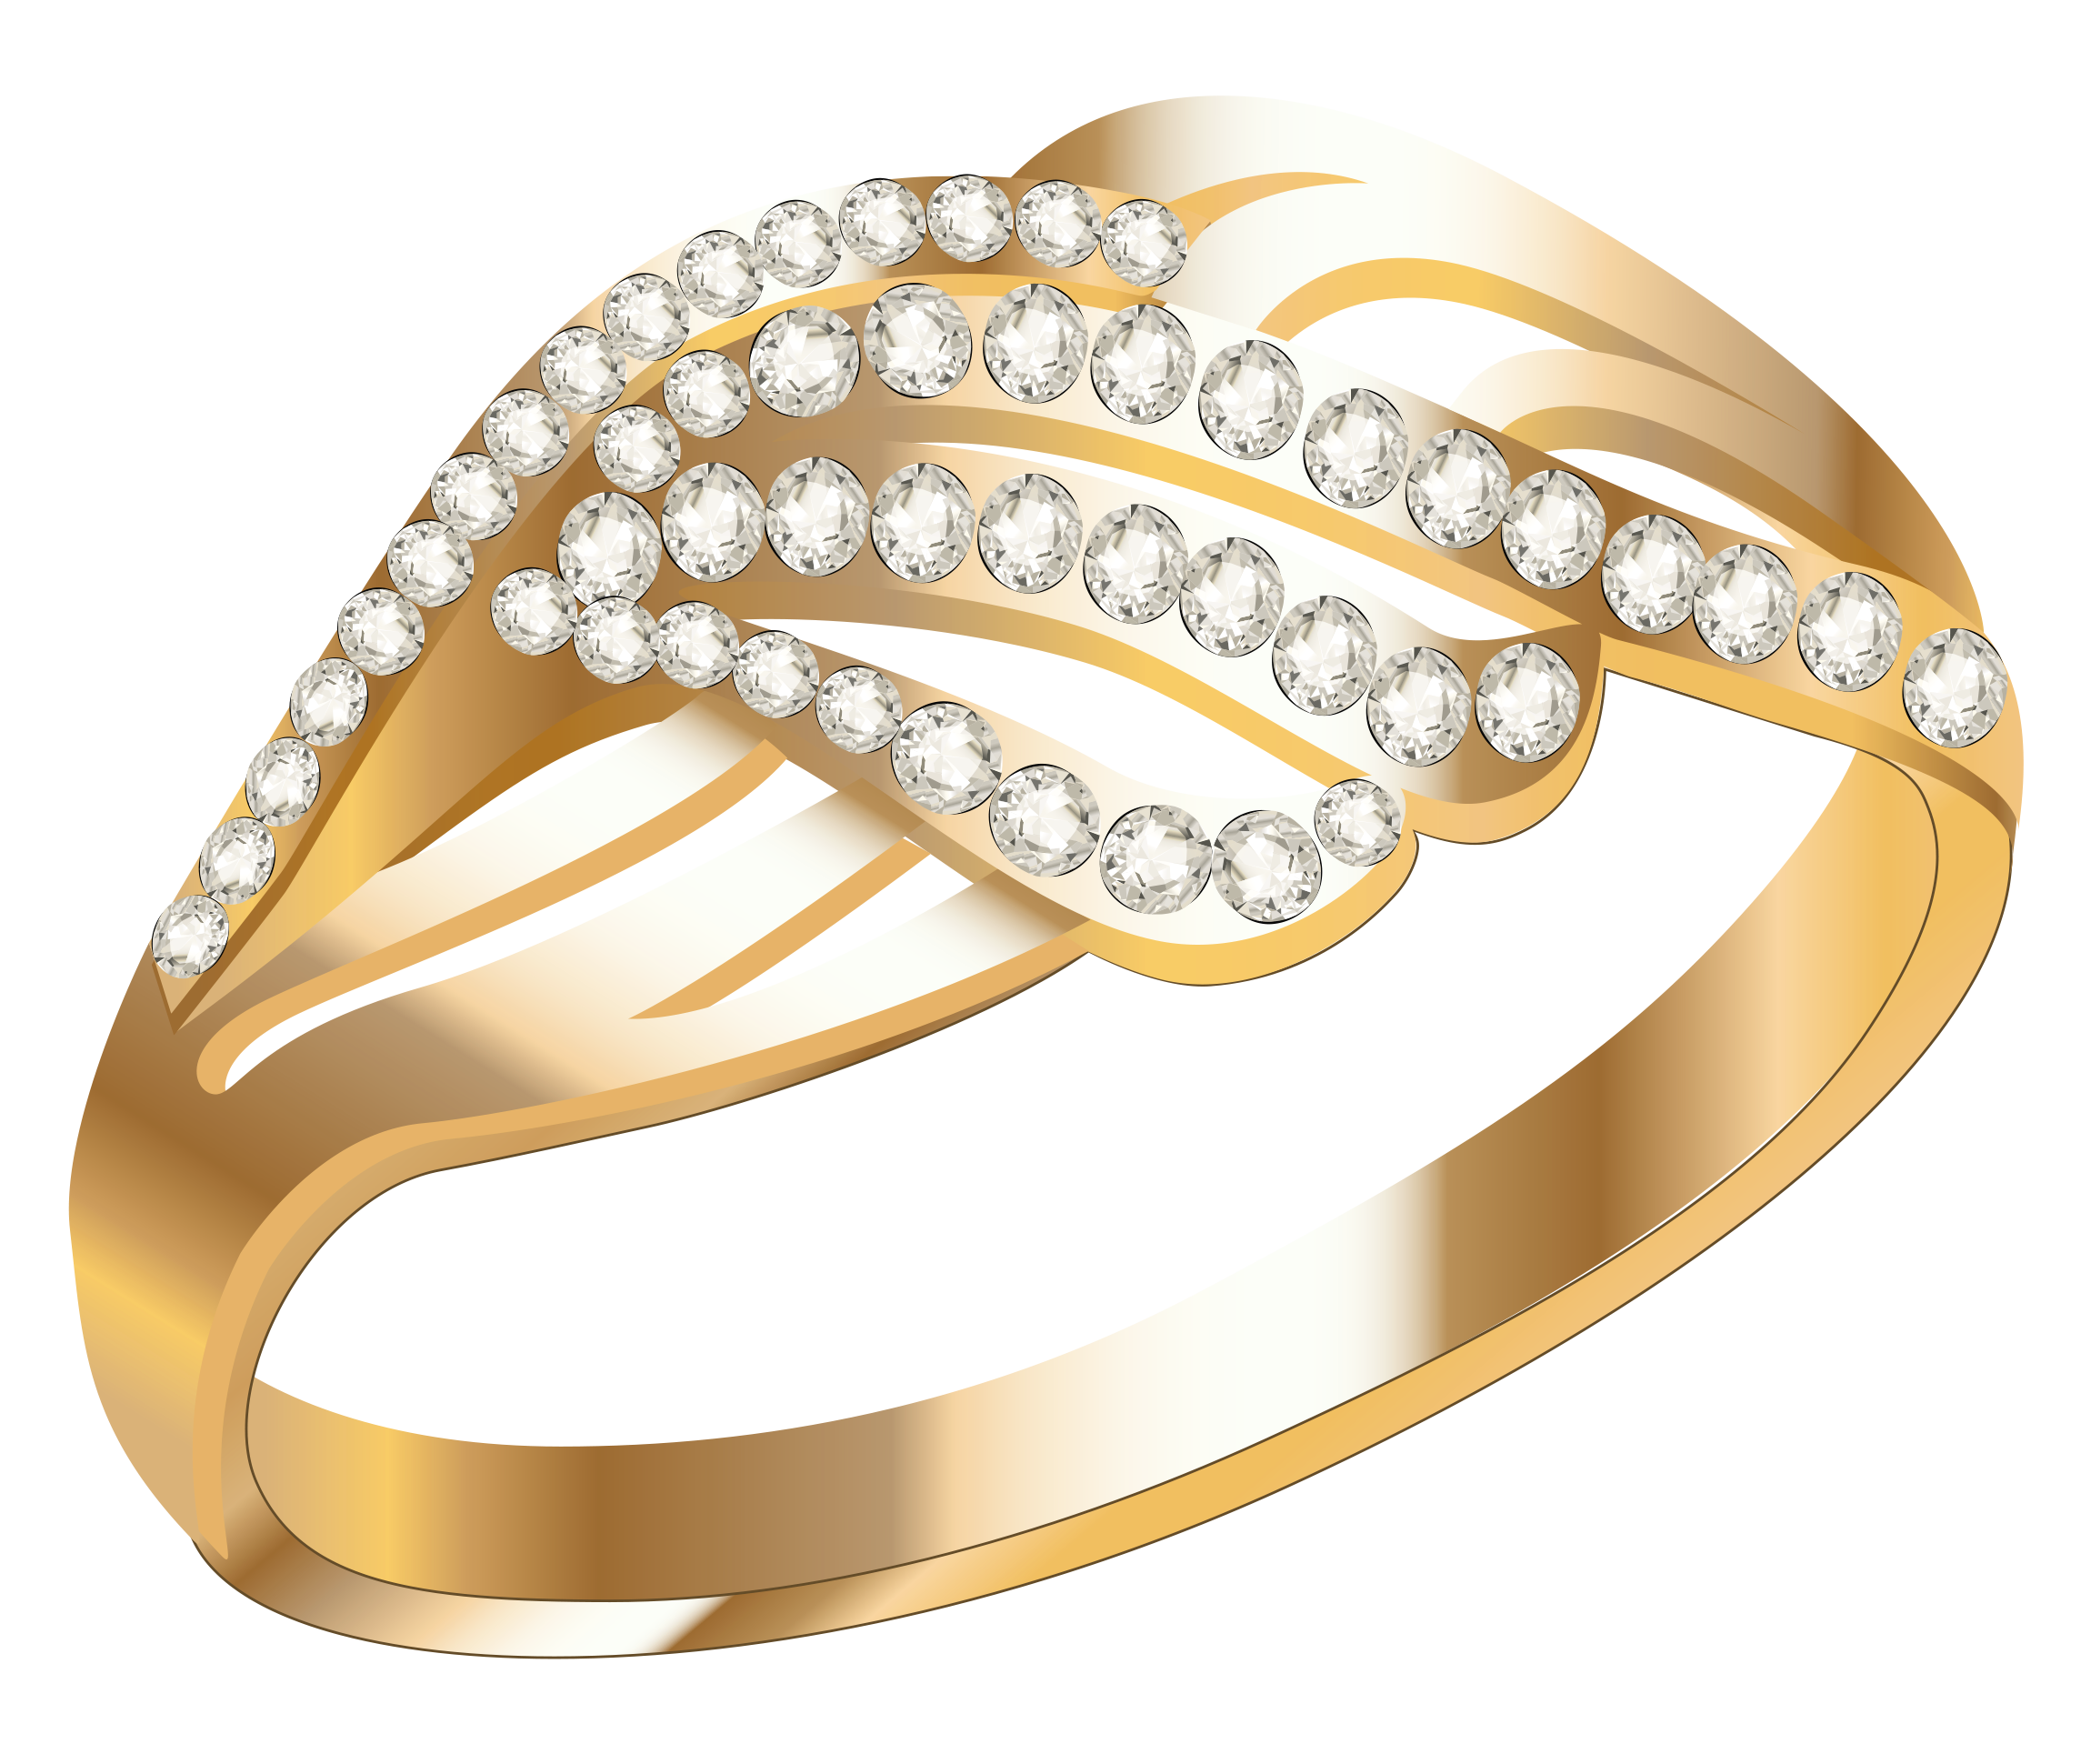 Jewelry PNG images download ring PNG earnings PNG 2289x1940